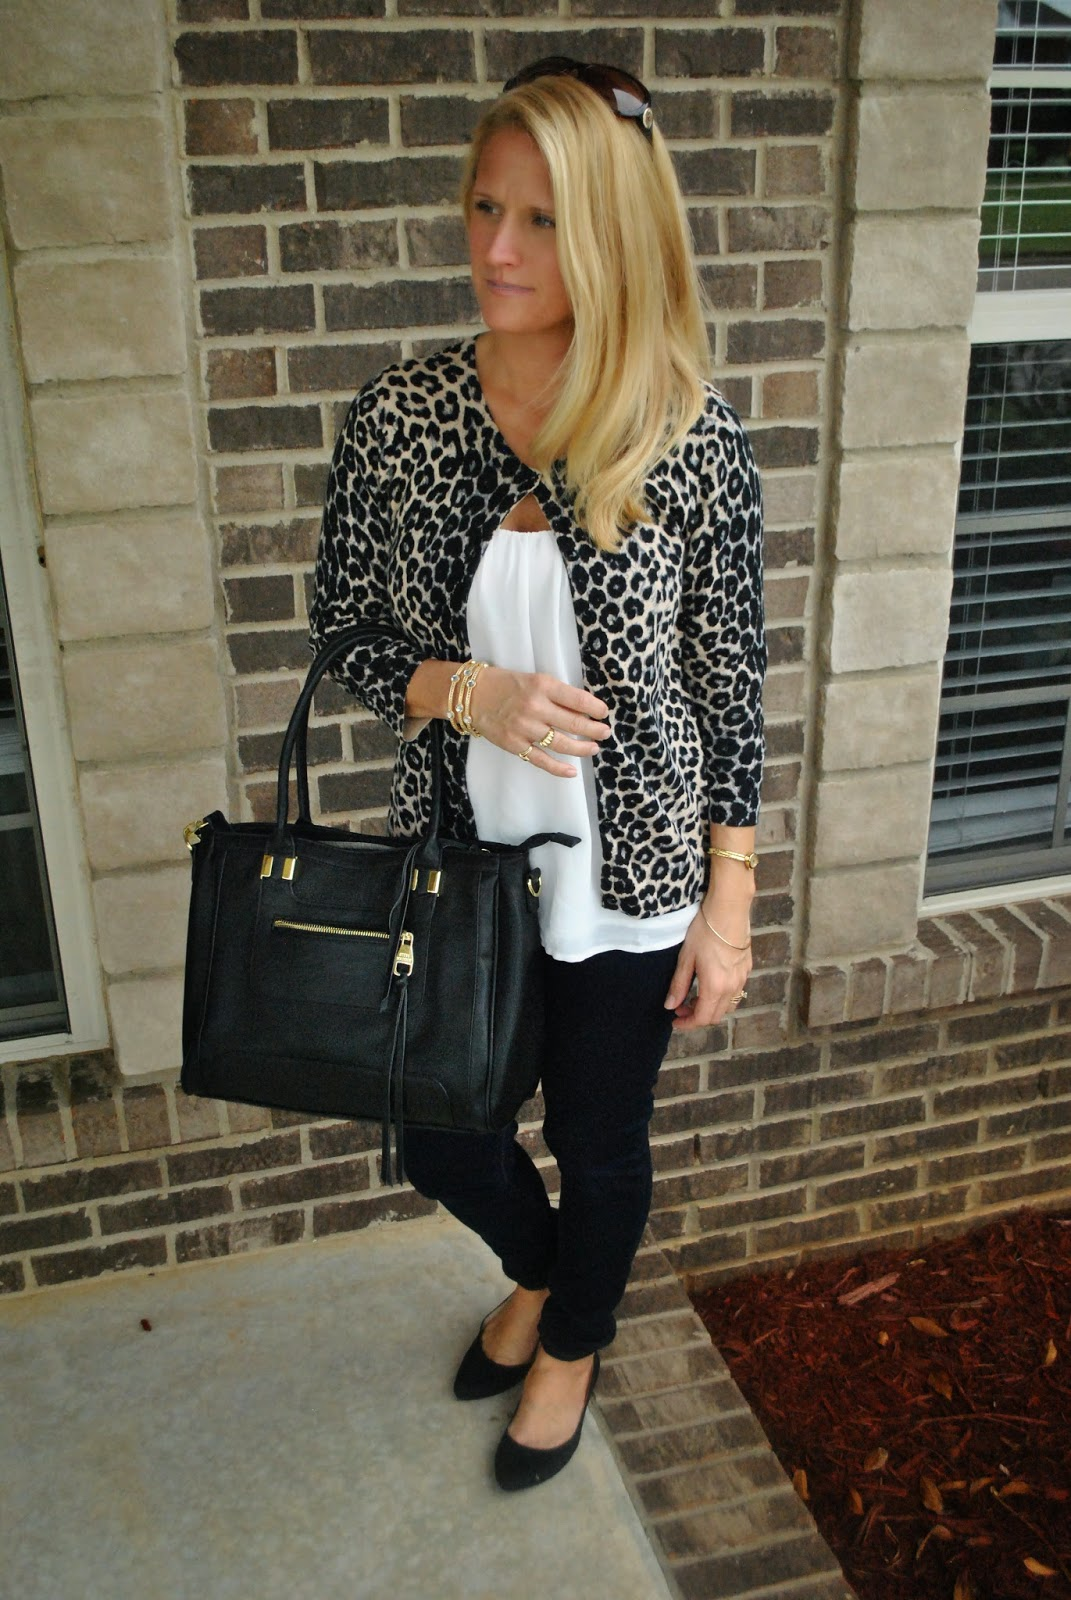 Leopard CArdi/Dark Skinnies/Structured Tote/Oversized Blouse